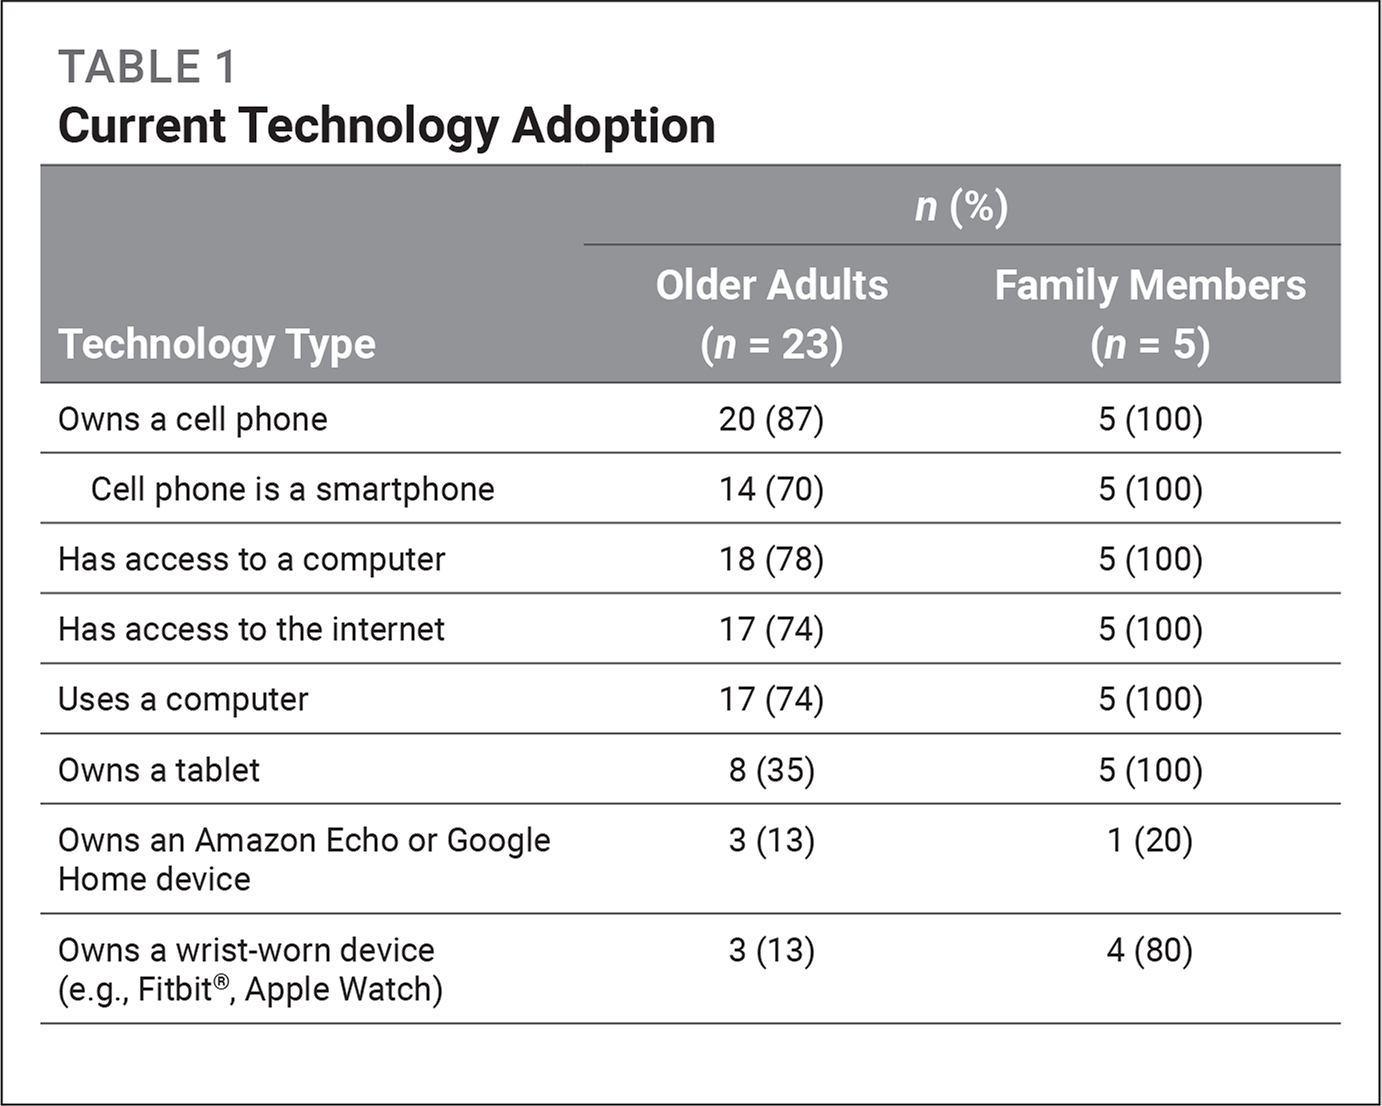 Current Technology Adoption